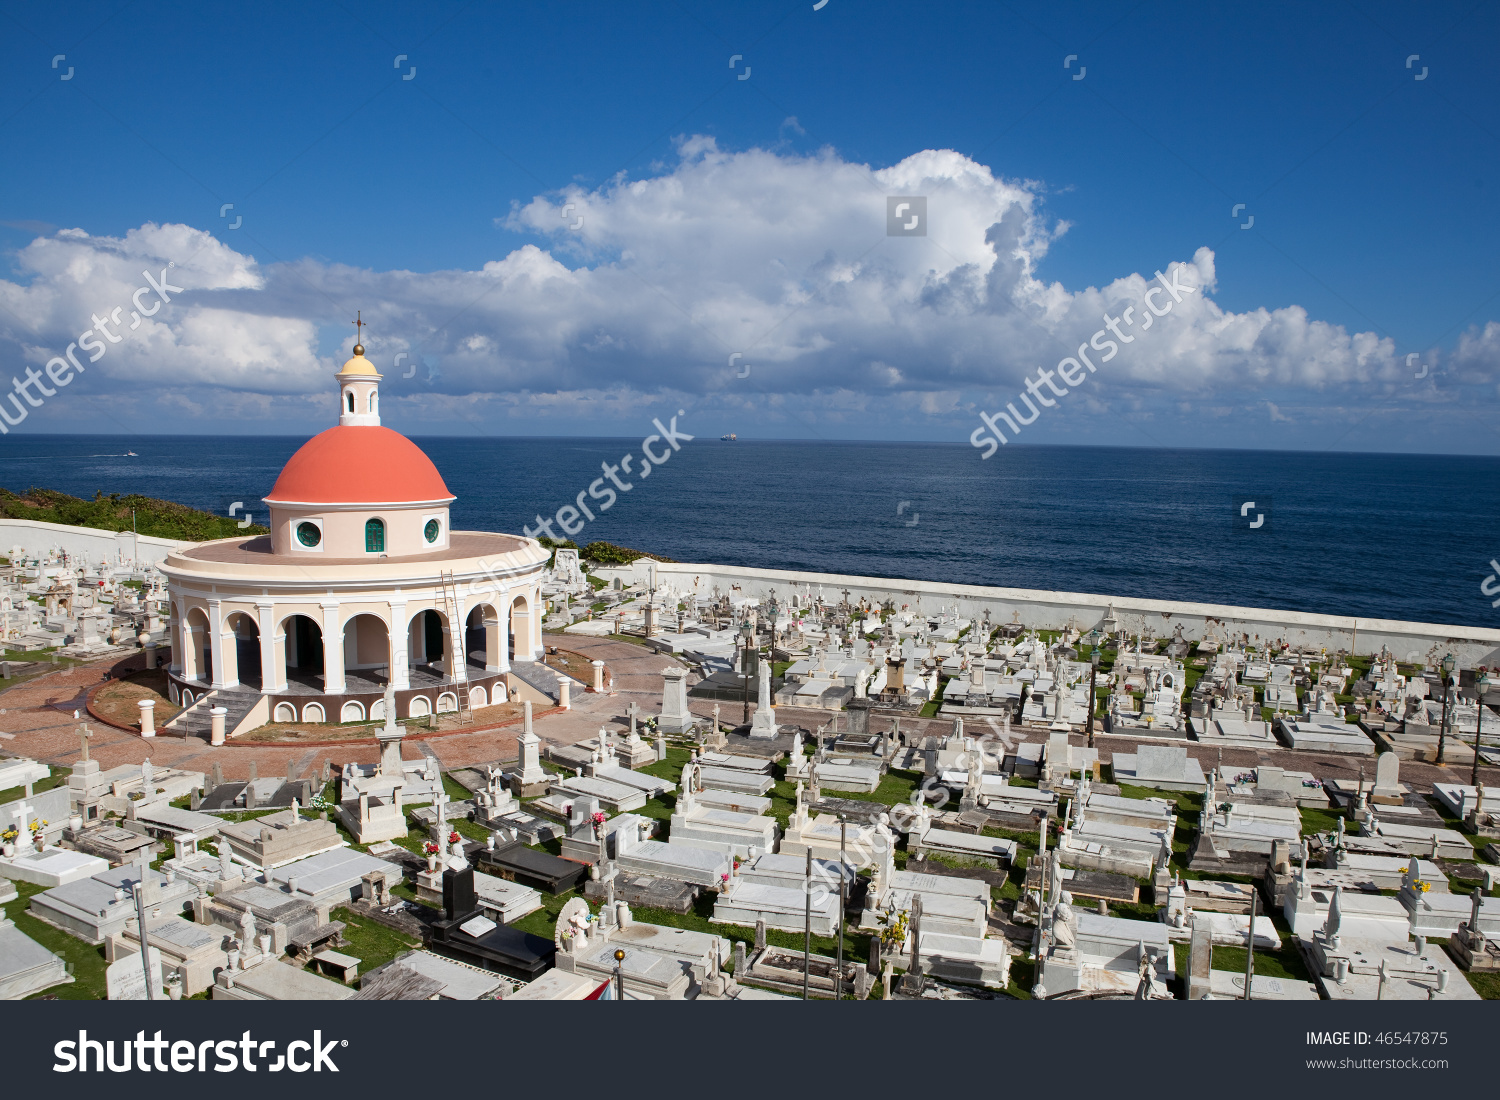 Old San Juan Cemetery Puerto Rico Stock Photo 46547875 : Shutterstock.